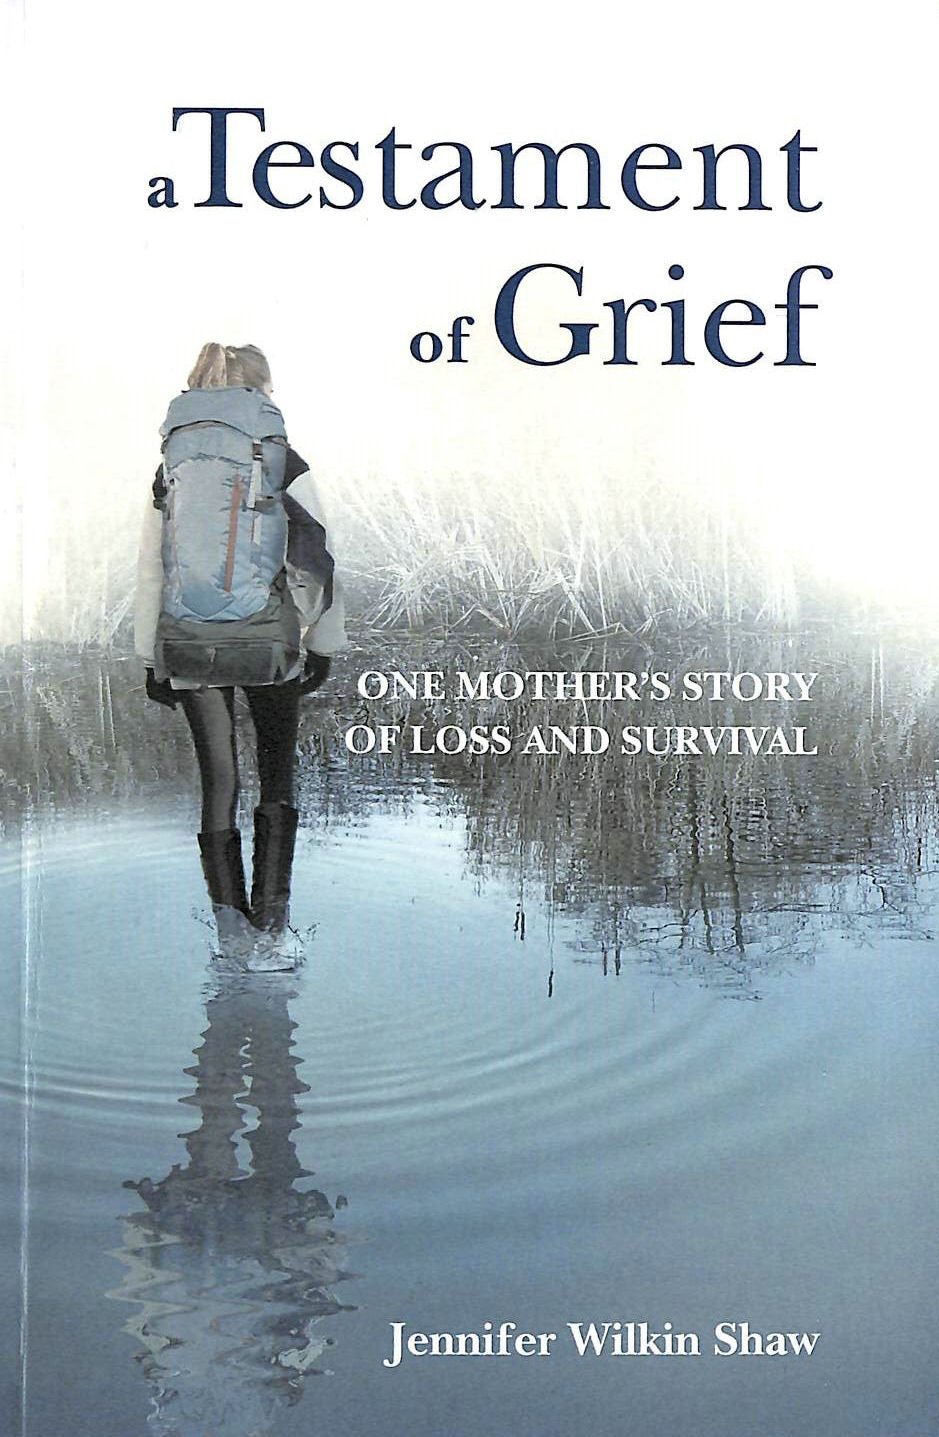 WILKIN SHAW, JENNIFER - A Testament of Grief: One Mother's Story of Loss and Survival